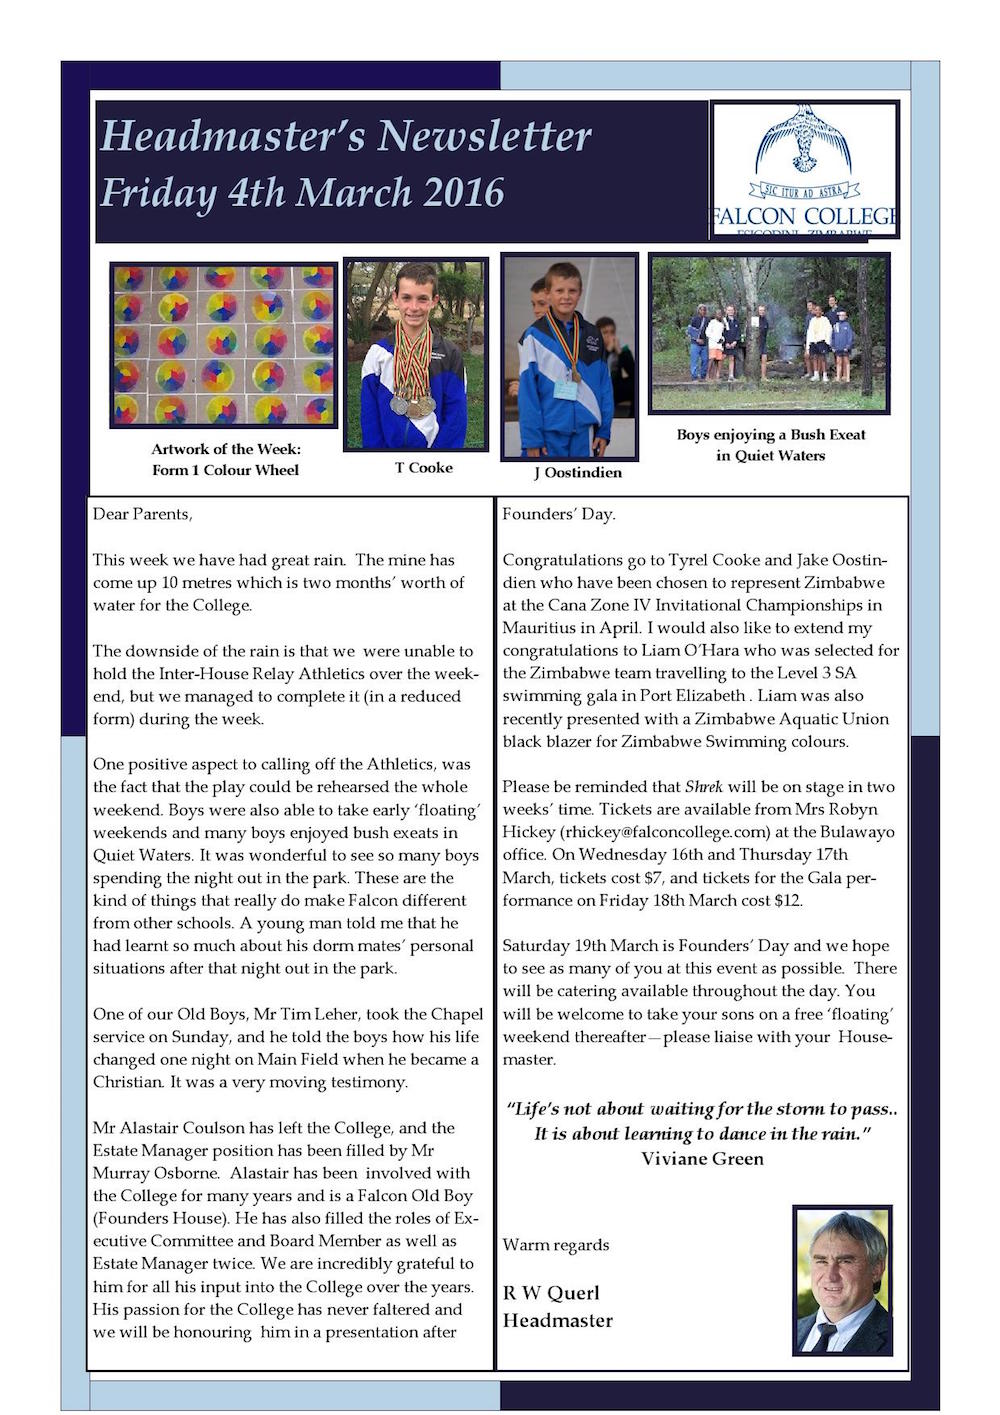 Headmaster's Newsletter Friday 4th March 2016 edited_000001